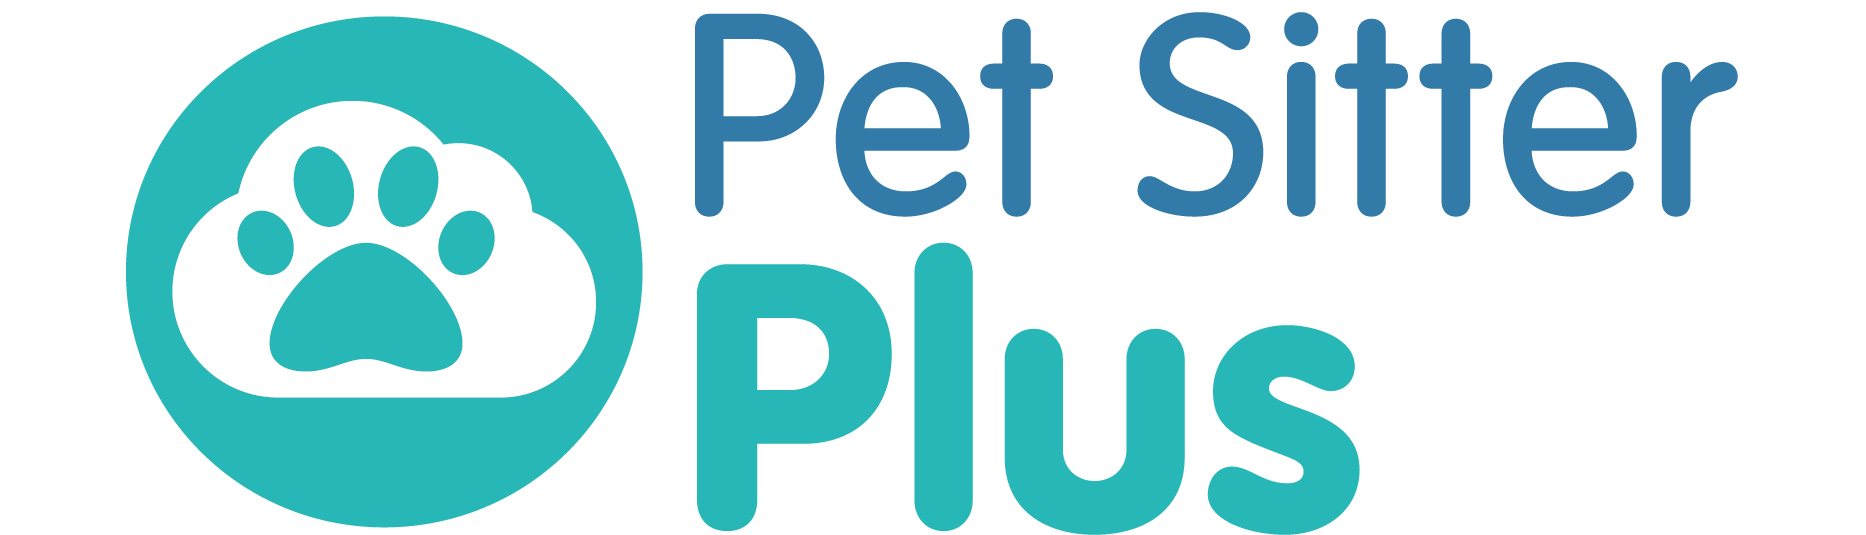 Pet Care Tracking Software